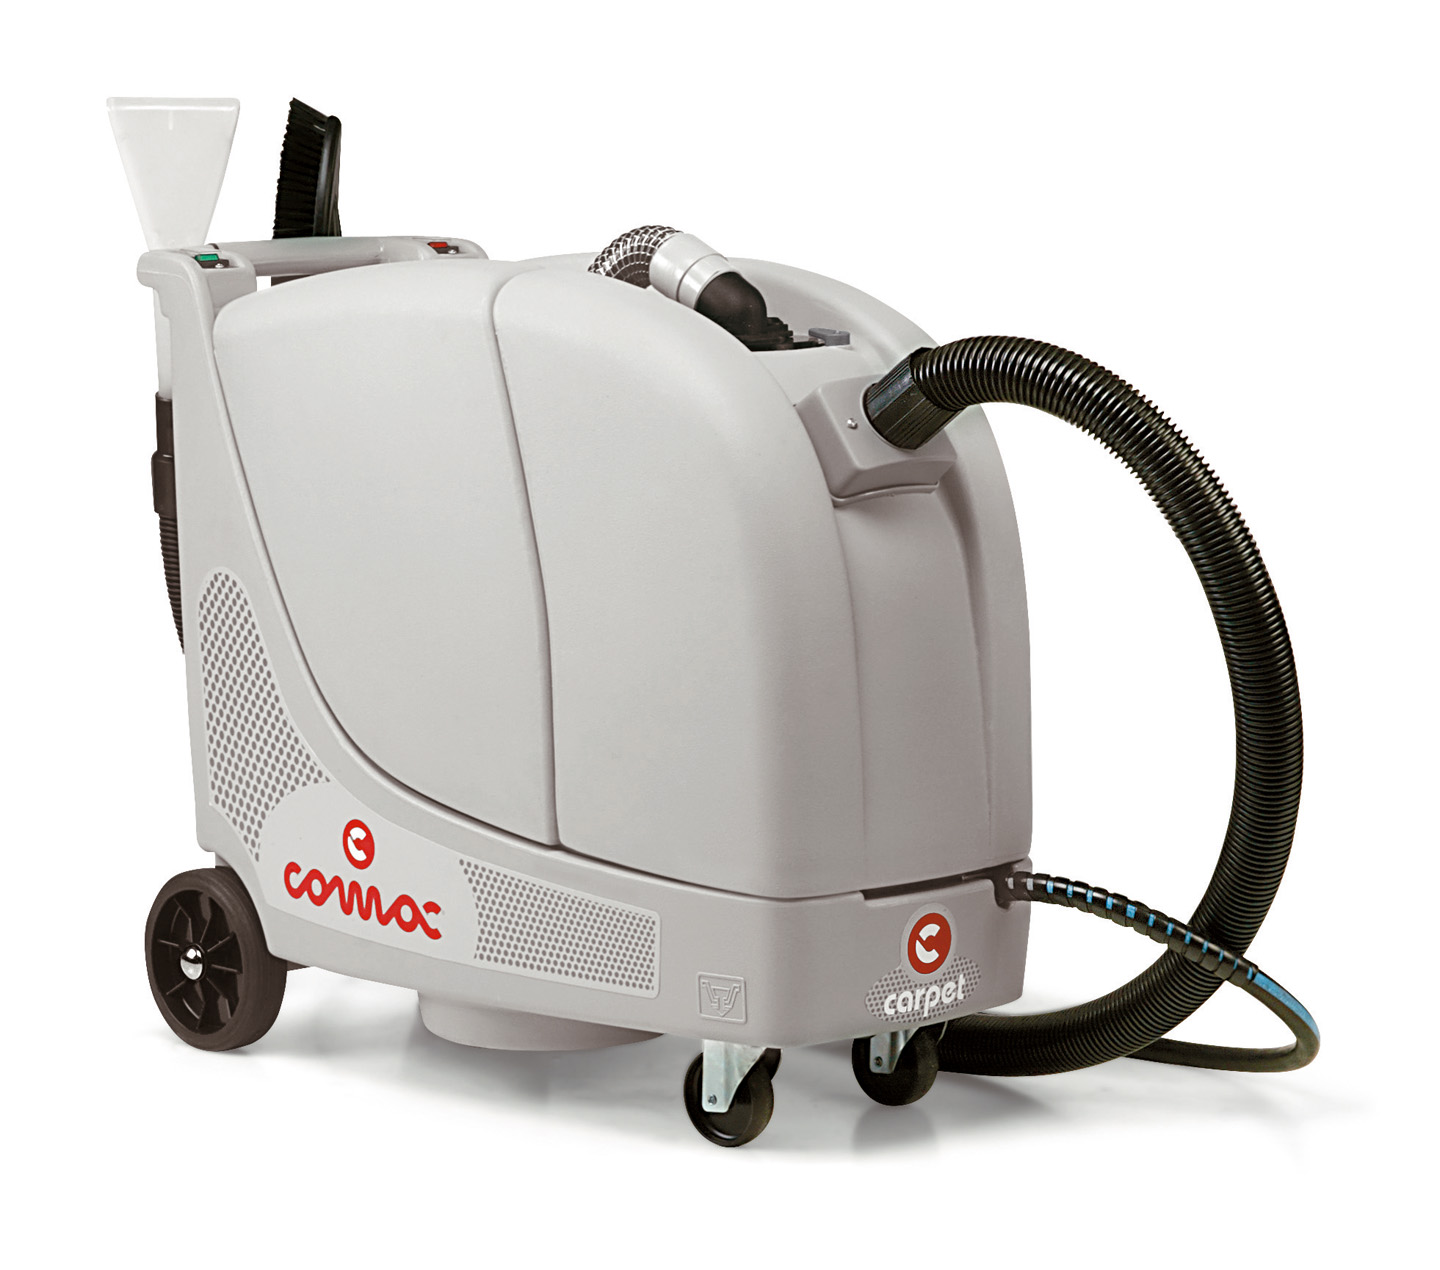 sofa cleaning machine india living room furniture fabric sofas carpet for commercial use